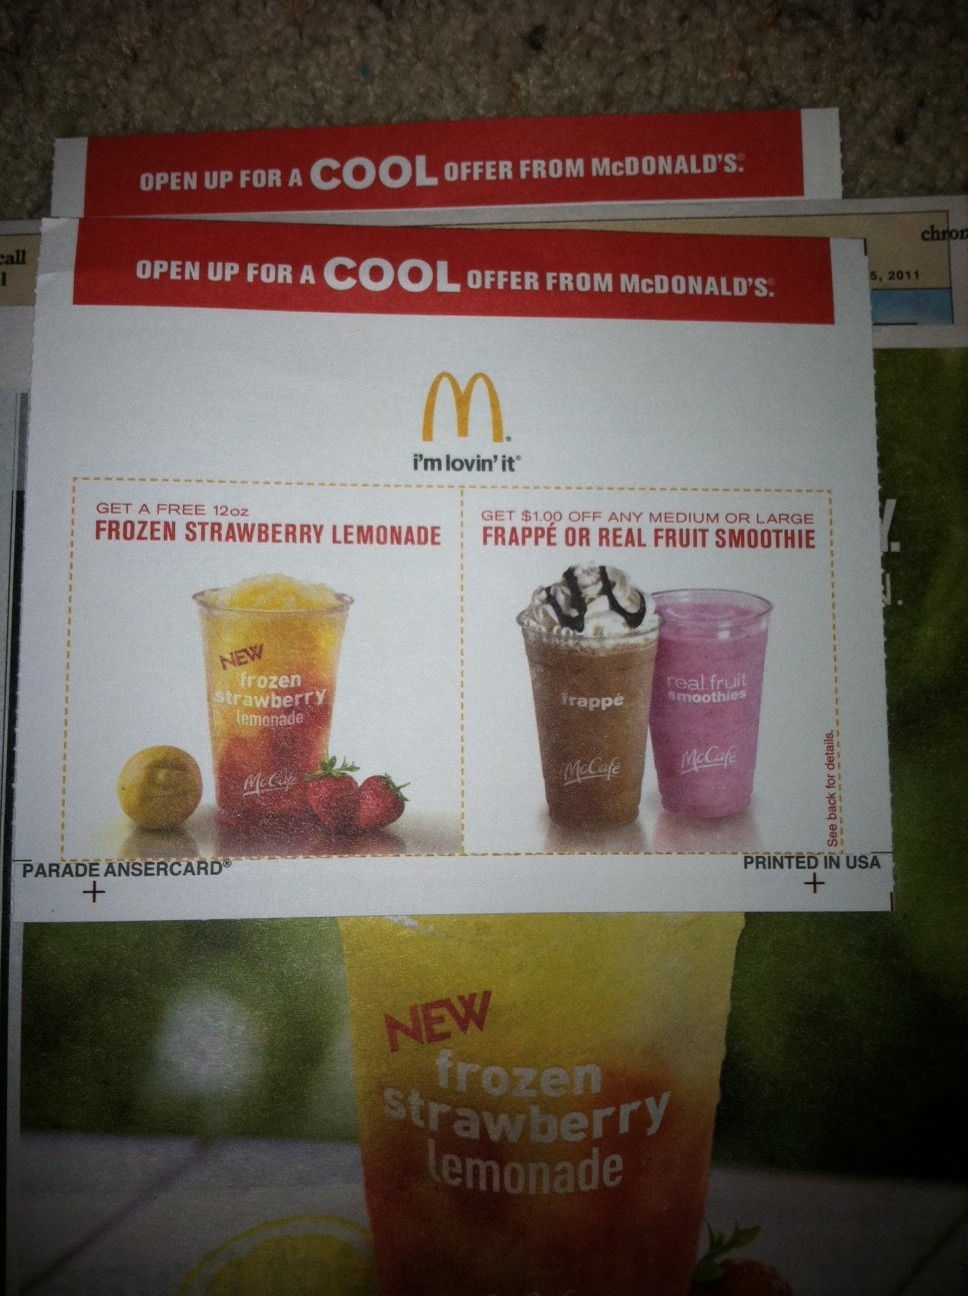 Make Sure To Check The Parade Magazine! Mcdonalds Coupons - Free Mcdonalds Smoothie Printable Coupon